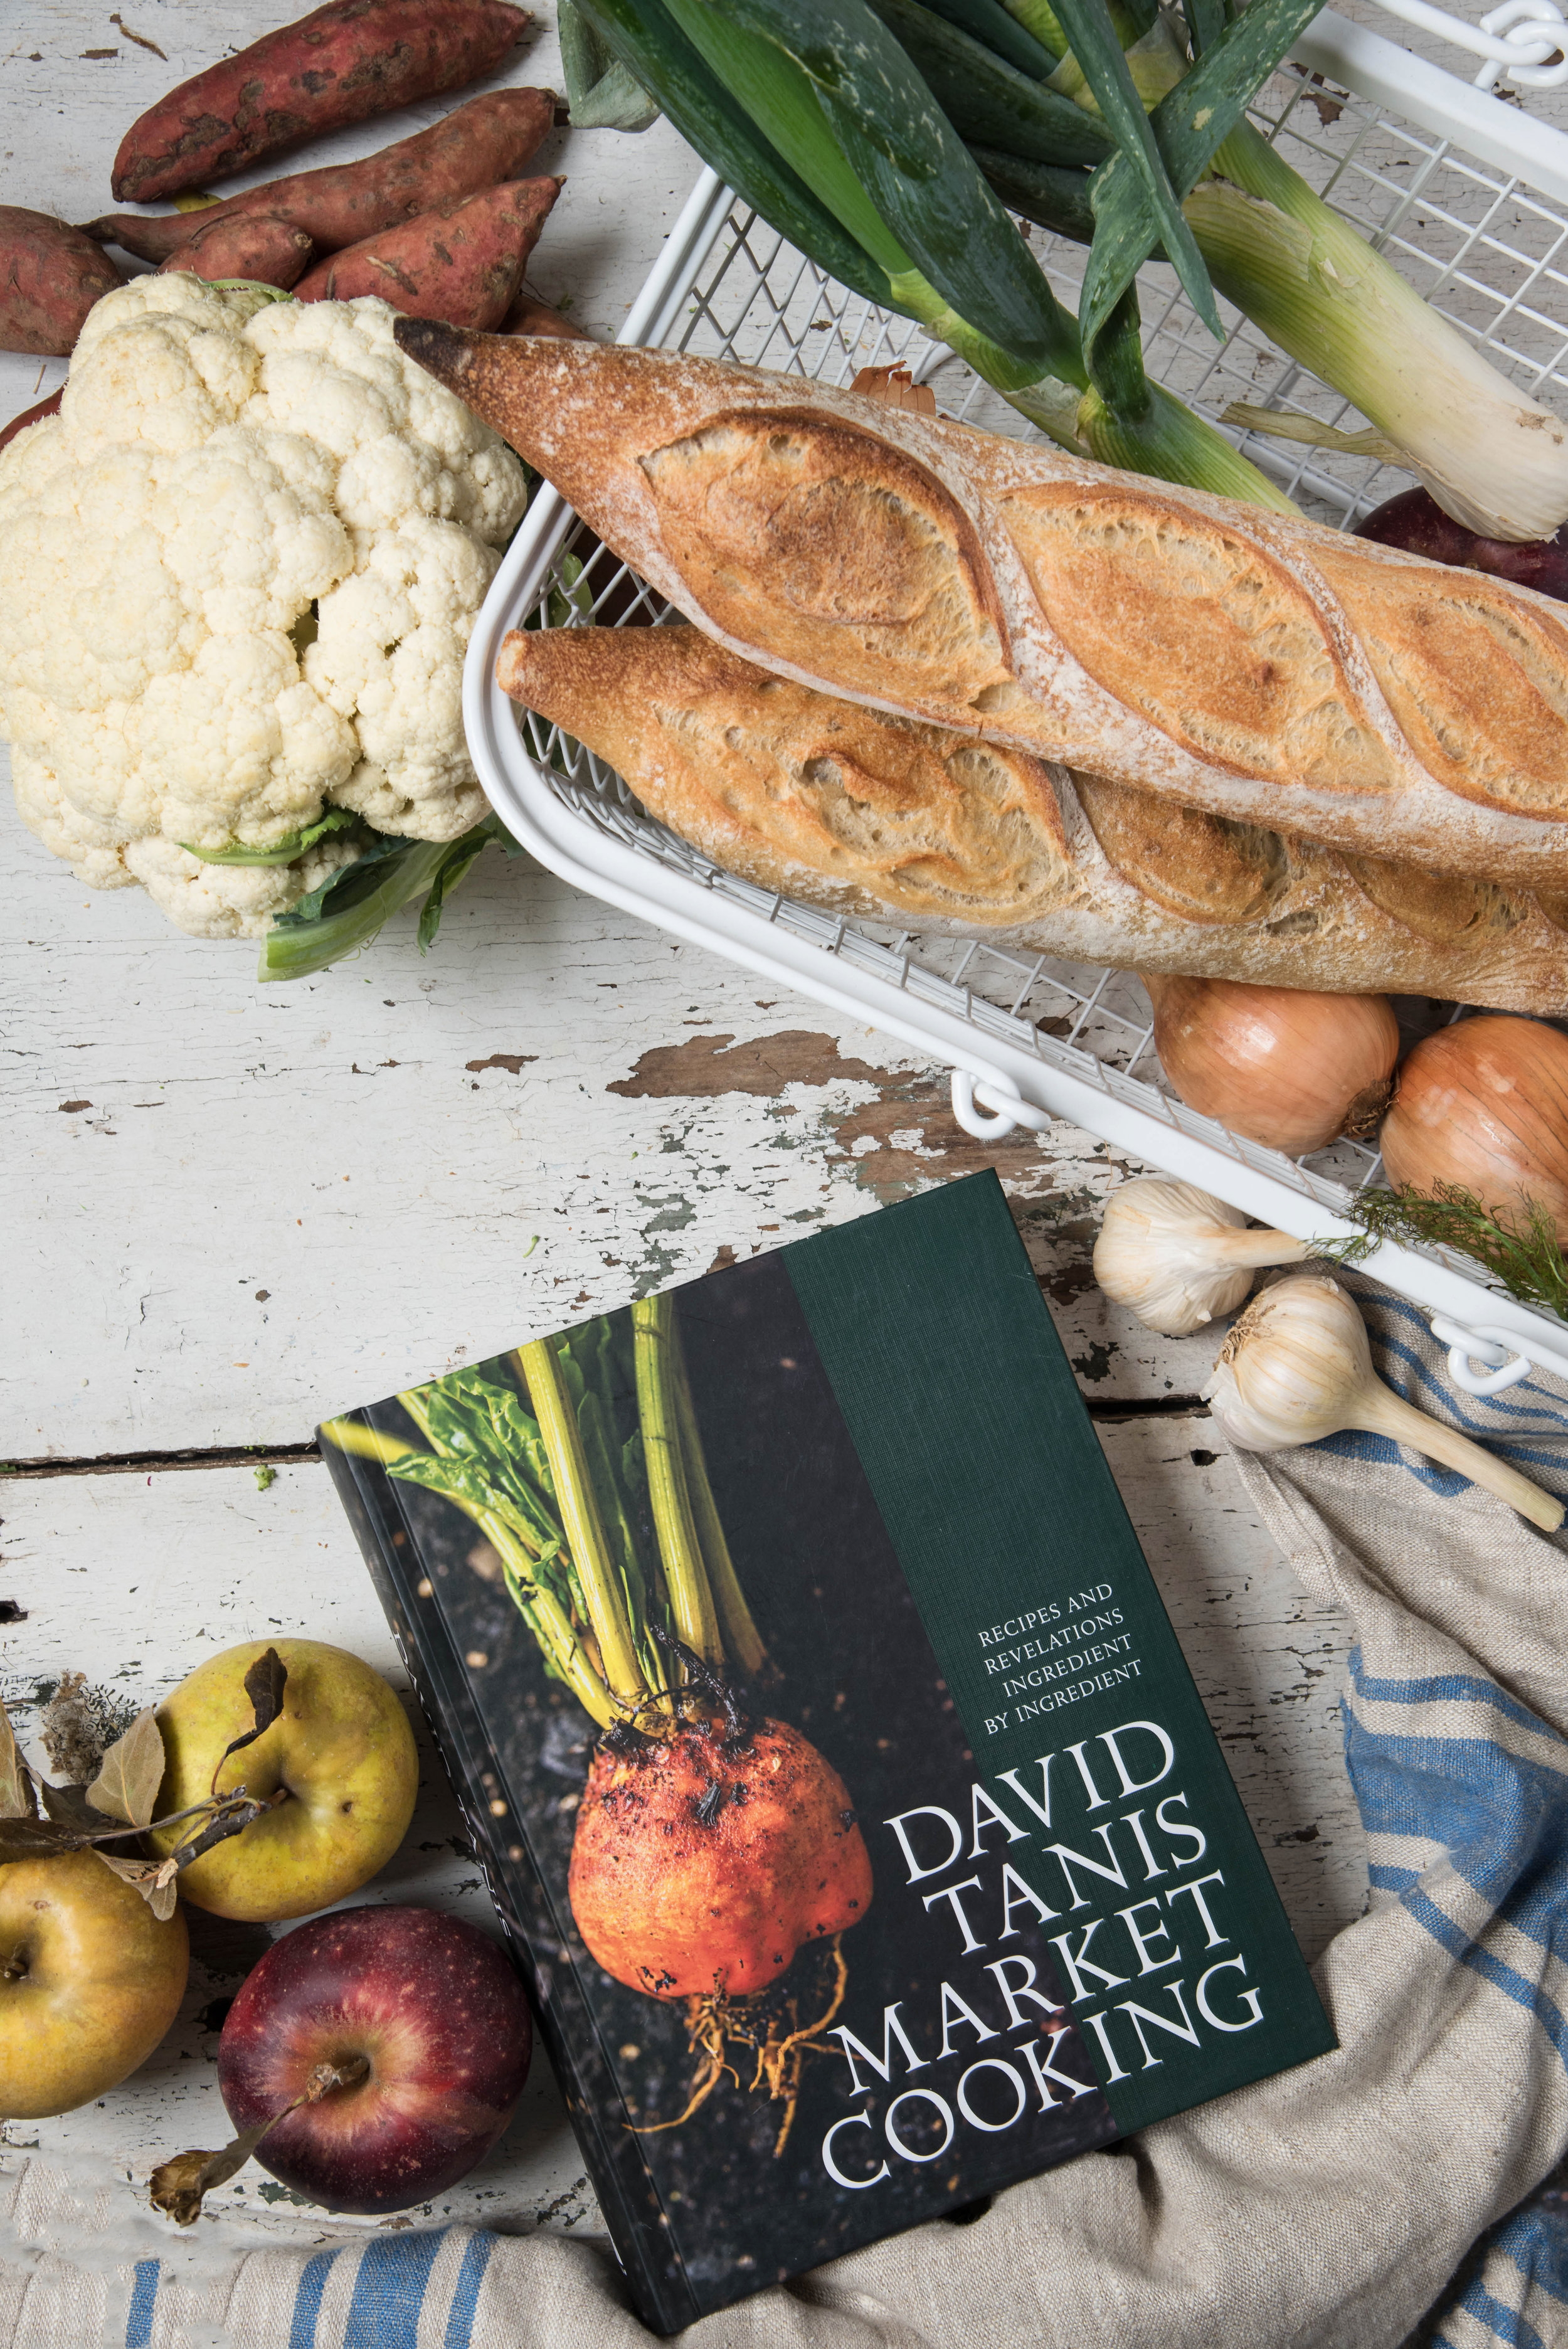 ROSE & IVY JOURNAL Gift Guide For the Farmers Market Aficionado Lostine and David Tanis Market Cooking